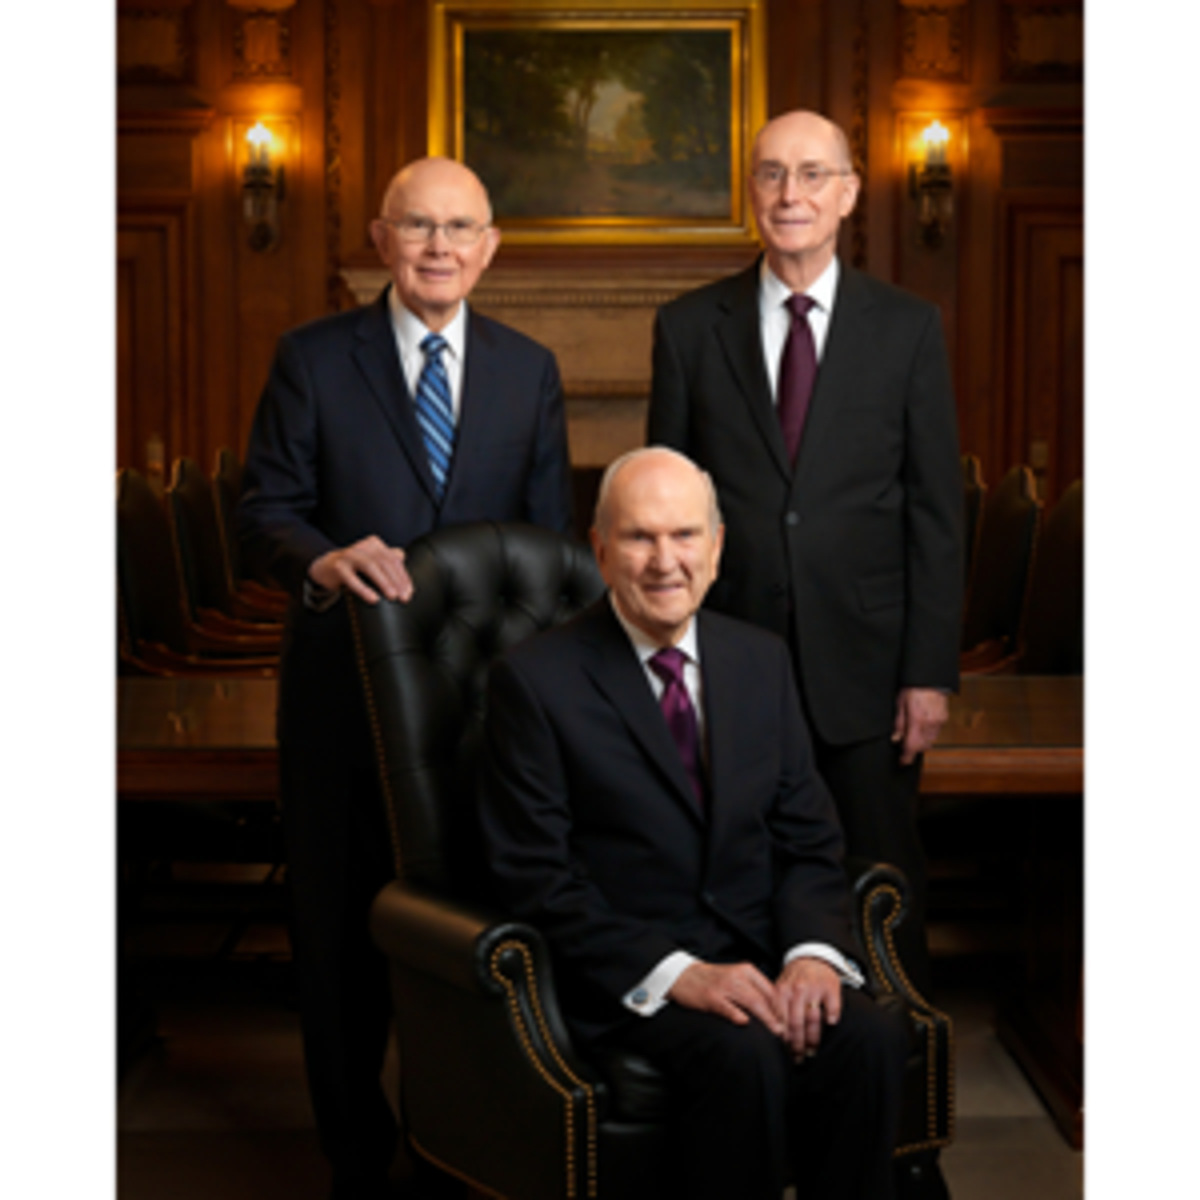 First Presidency of the Church of Jesus Christ of Latter-day Saints